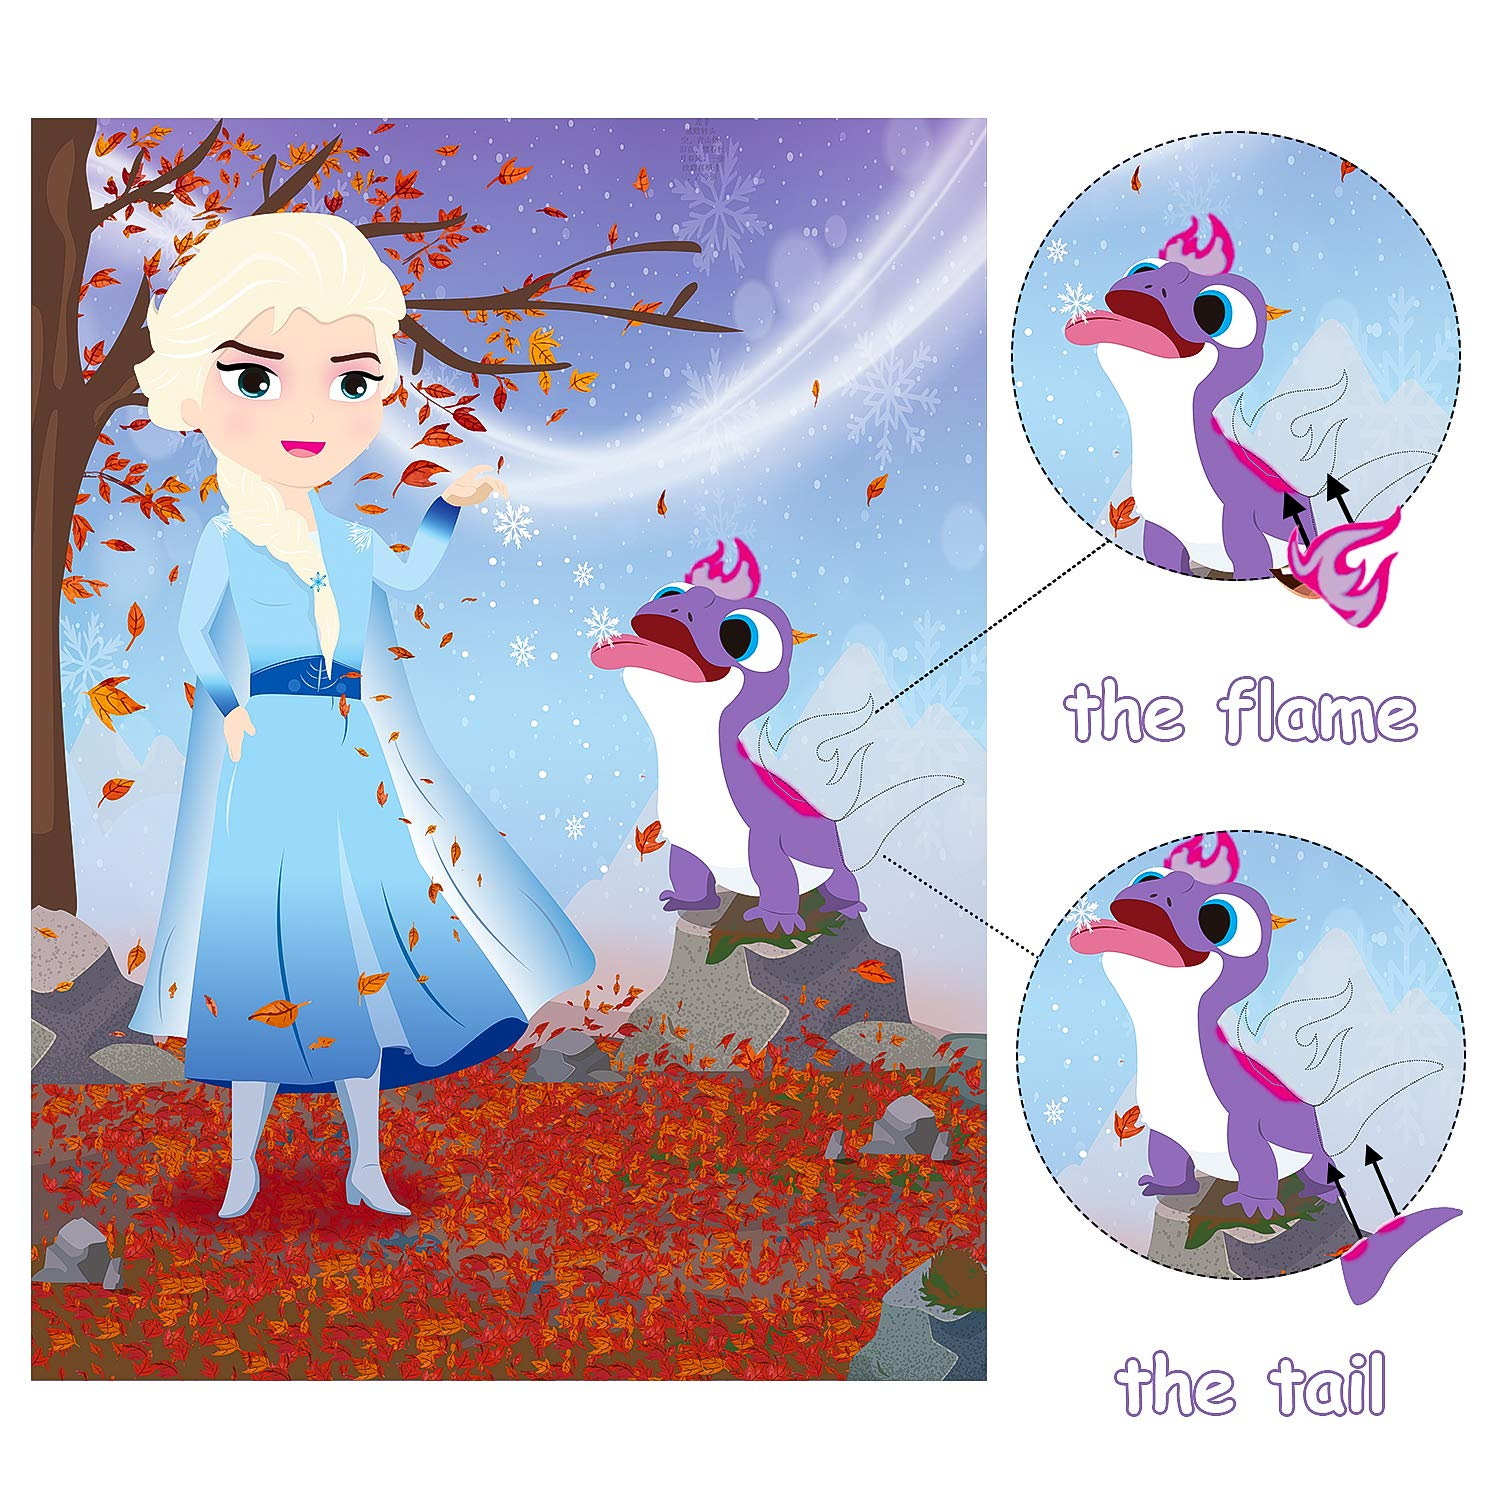 MALLMALL6/36Pcs Frozen Make/a/Face/Stickers Princess Party/Favors/Games Frozen Themed Birthday Party Supplies Princess Sticker Snow Queen Party Decorations Elsa Anna Dress Up DIY/Crafts for Kids